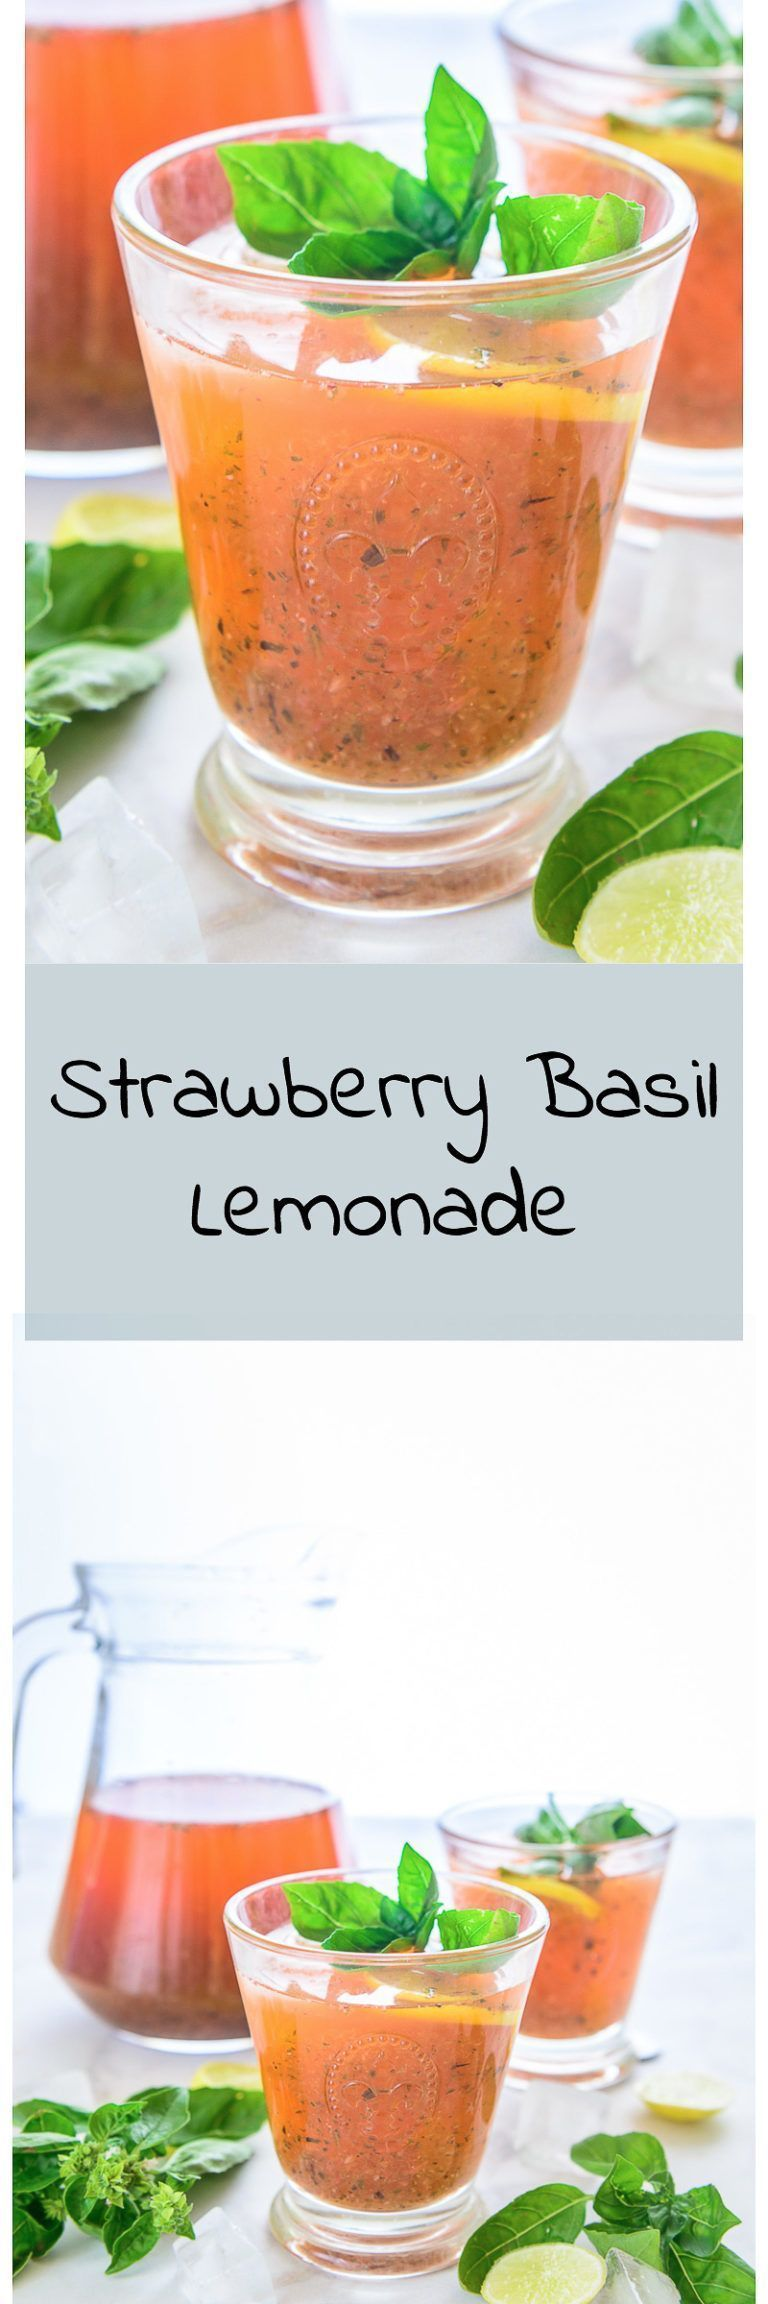 Strawberry Basil Lemonade #basillemonade Strawberry Basil Lemonade incorporates the tangyness of lemon with a dash of sweetness of fresh strawberries, basil and heaps of crushed ice. #basillemonade Strawberry Basil Lemonade #basillemonade Strawberry Basil Lemonade incorporates the tangyness of lemon with a dash of sweetness of fresh strawberries, basil and heaps of crushed ice. #basillemonade Strawberry Basil Lemonade #basillemonade Strawberry Basil Lemonade incorporates the tangyness of lemon w #basillemonade